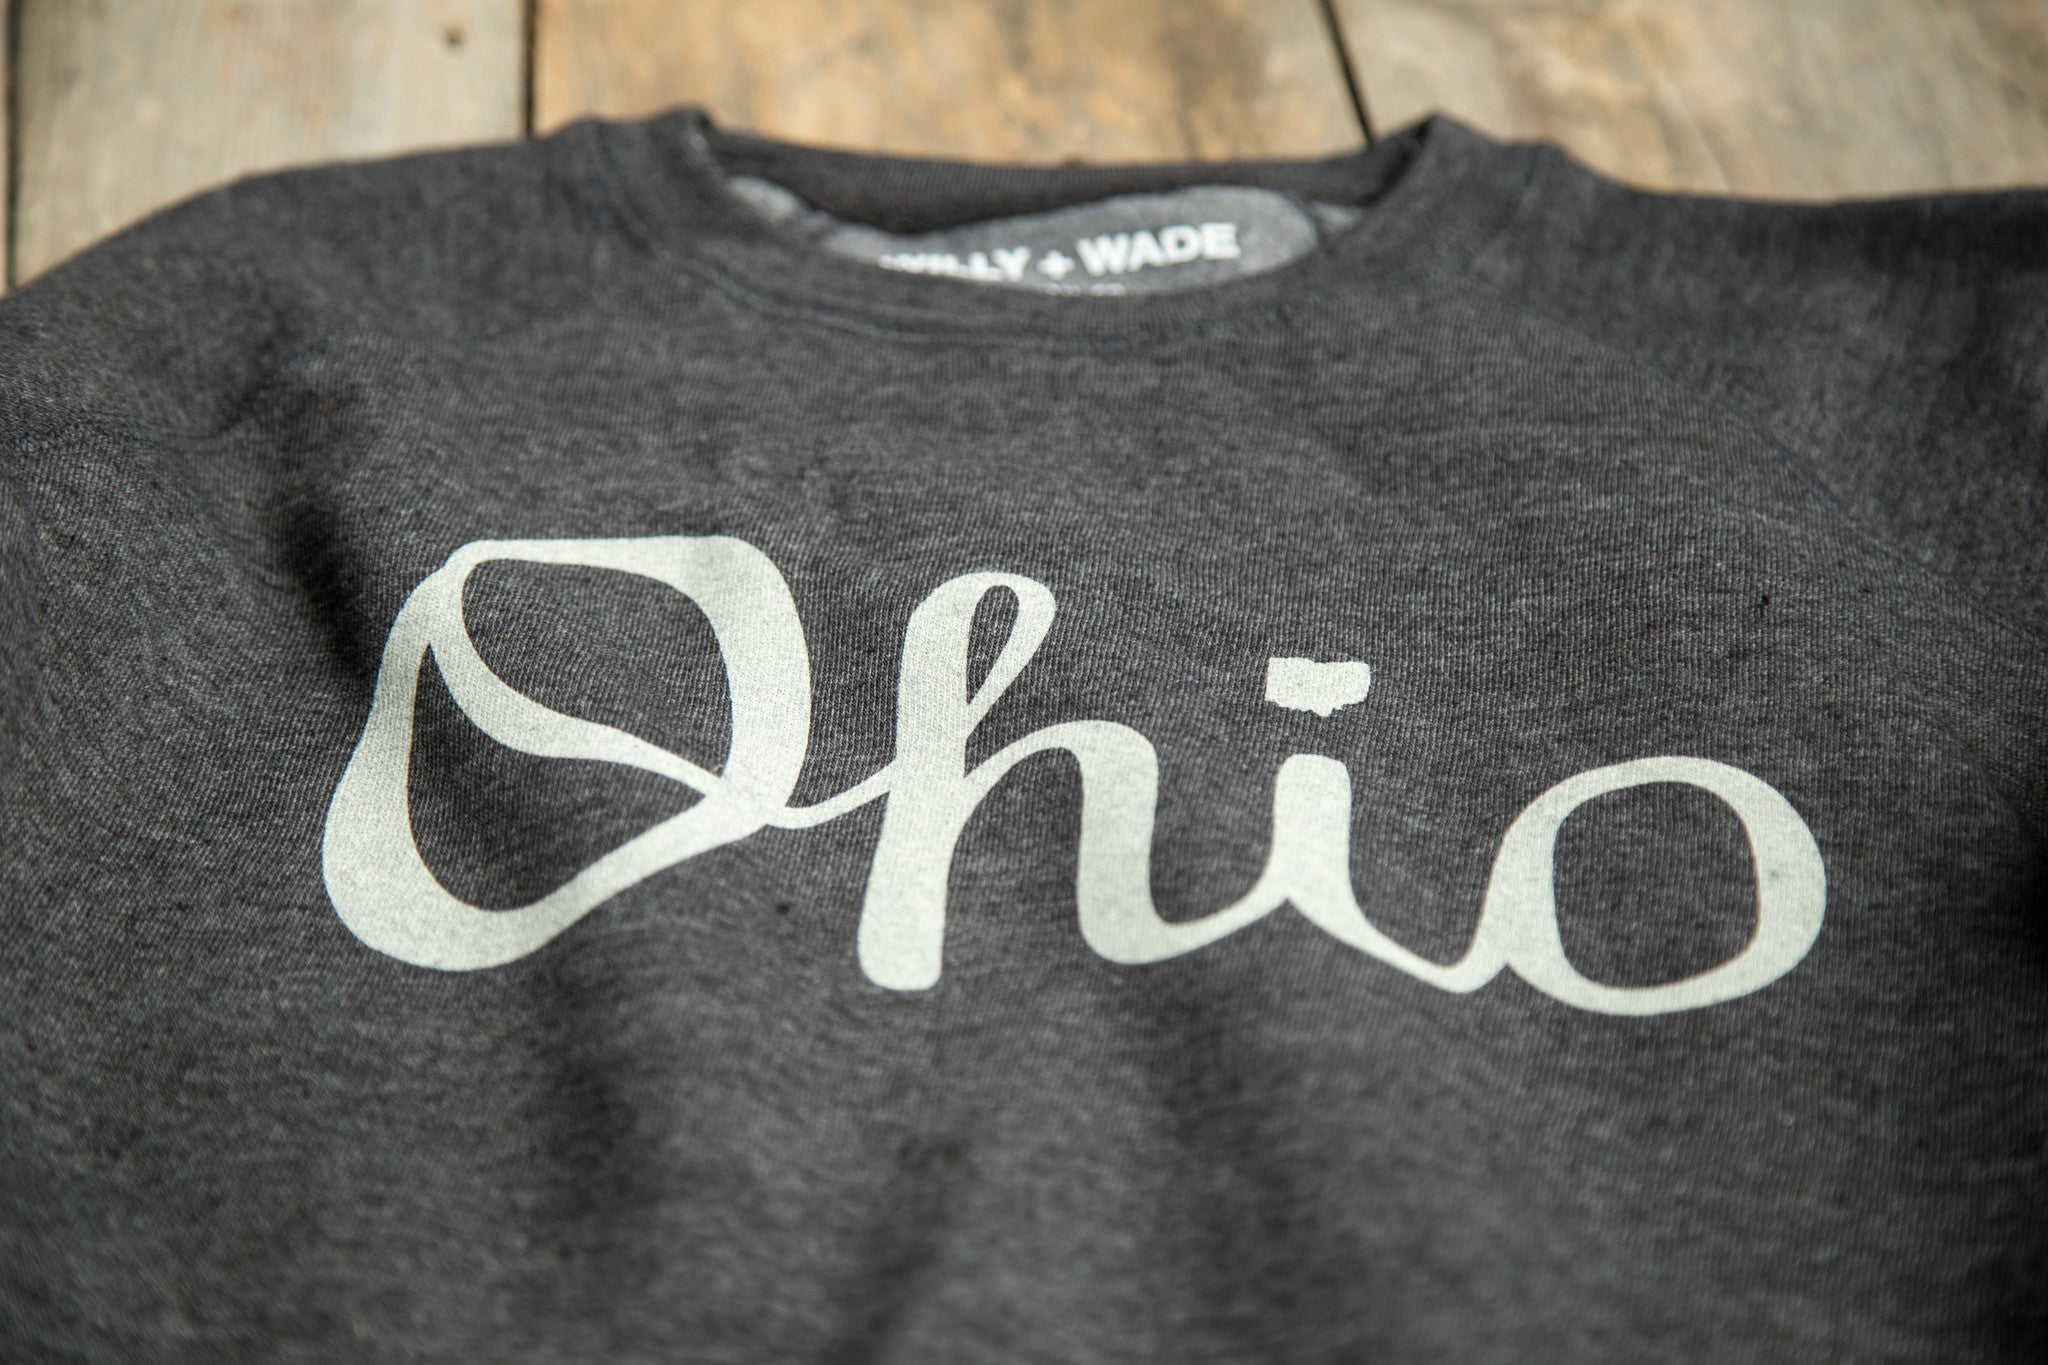 Show Your Buckeye Spirit with our Ohio Apparel